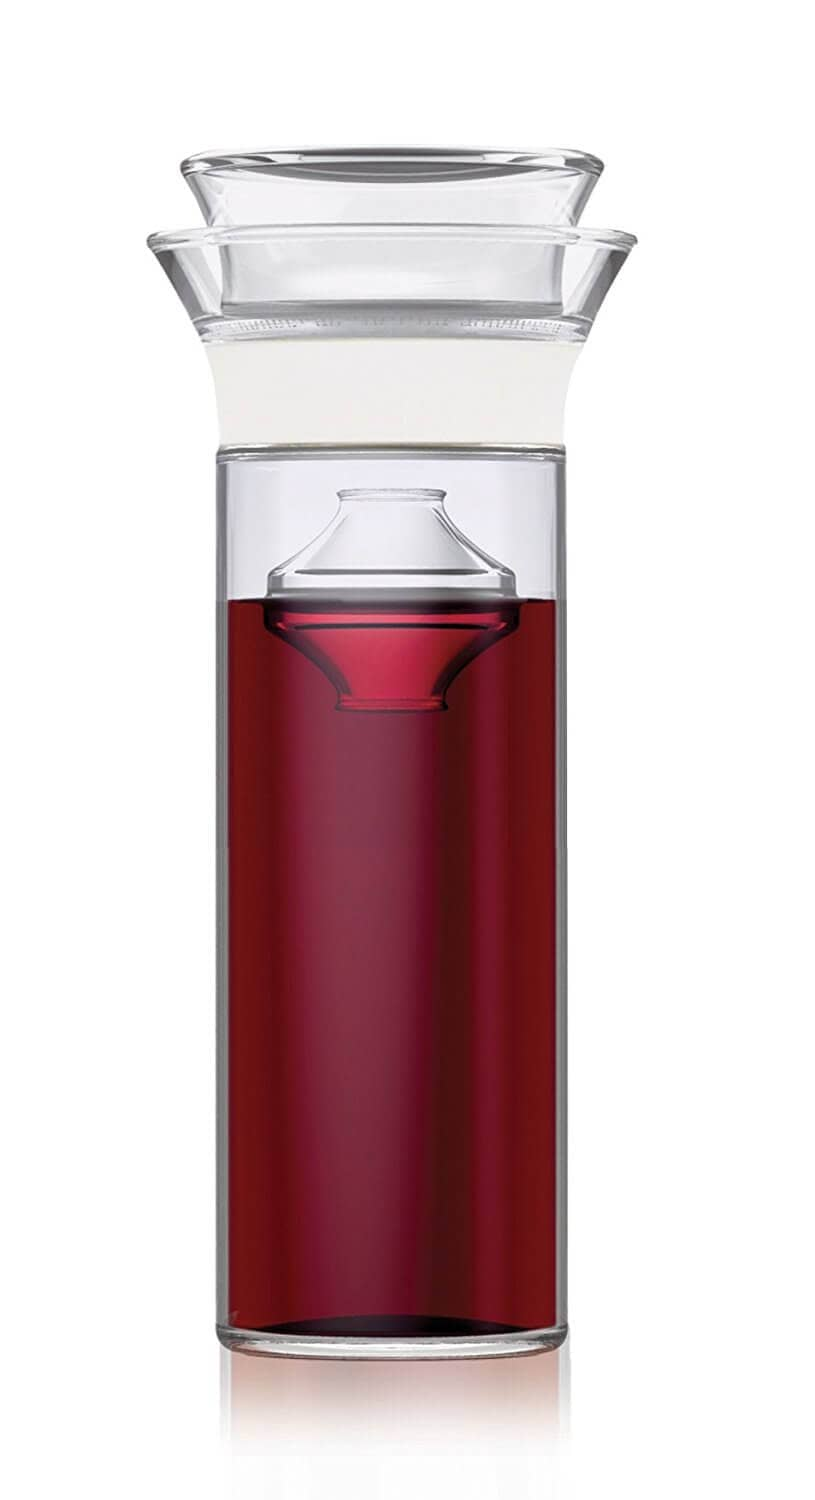 Carafe that Keeps Wine Fresh